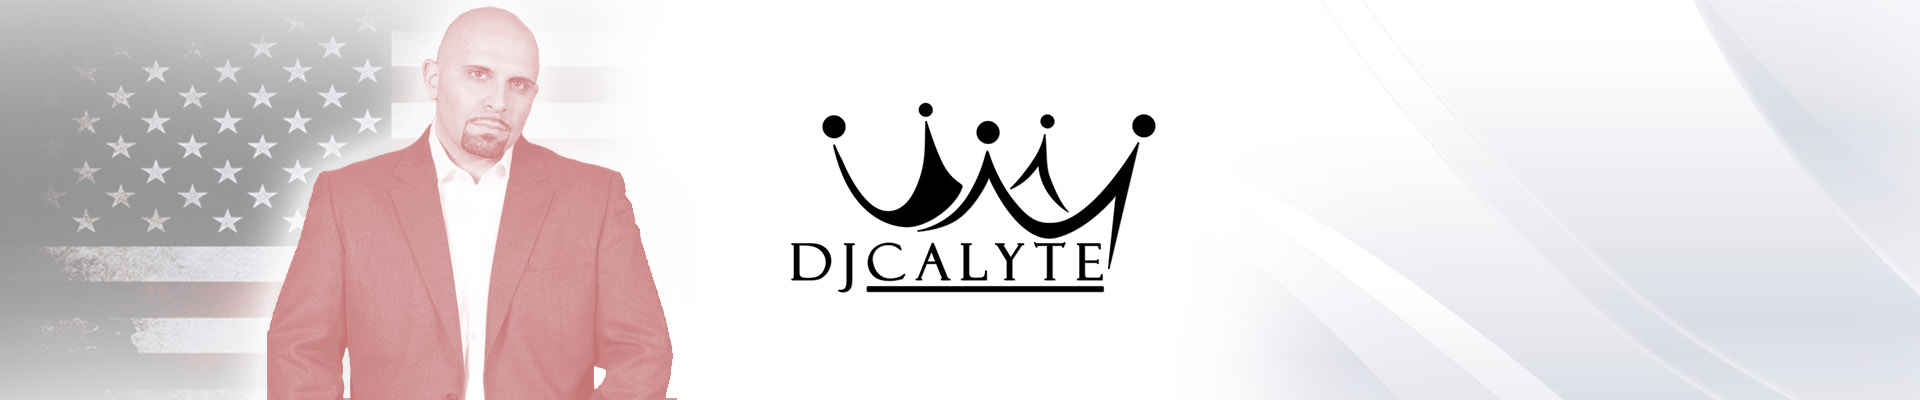 dj,calyte, bars & beats album cover, edm, dj, dutch, usa, senate dj